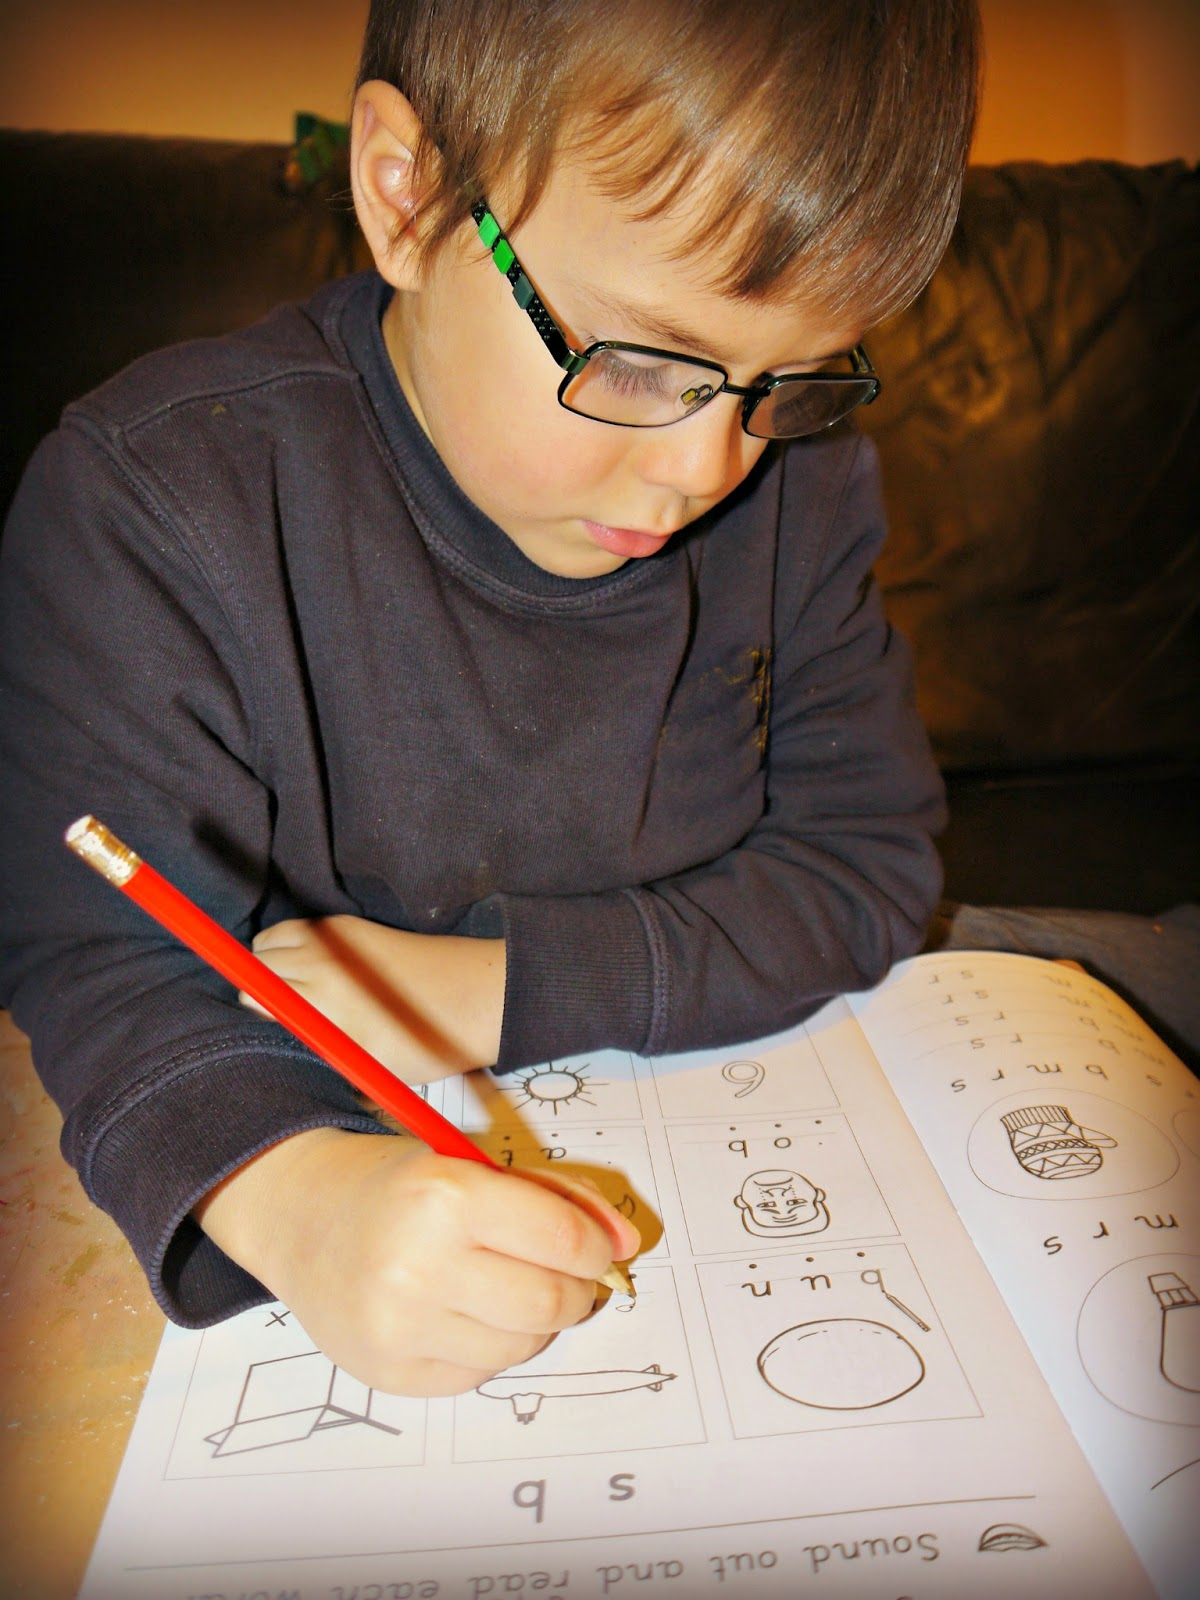 Lexia Reading and Writing Books for Young Children Levels 1-4